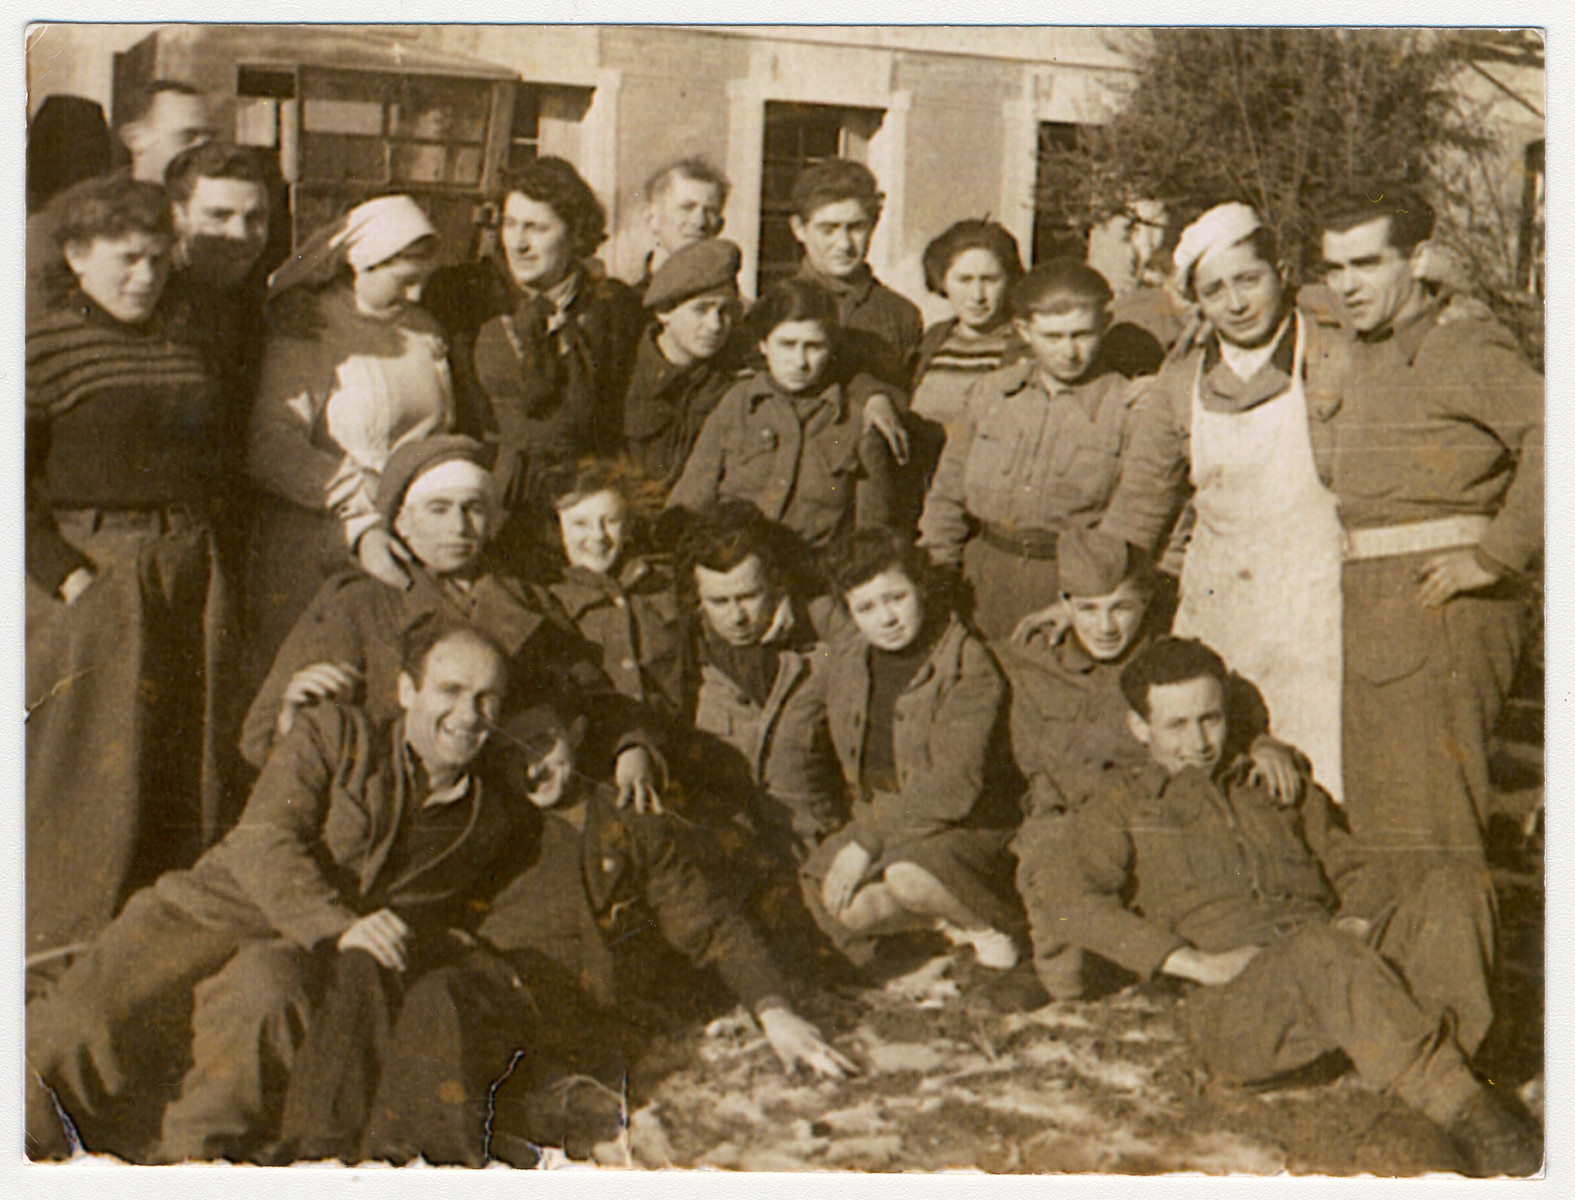 Jewish youth pose for a group portrait in a kibbutz hachshara in Italy.  Among those pictured is Josef Fischer, wearing a cook's apron (standing second from the right).  Standing to his right is Sgt. Noach Kleiner from the Jewish Brigade.  Mordechai, the group leader is in the front left.  Standing in the center is Rivke Domawaska.